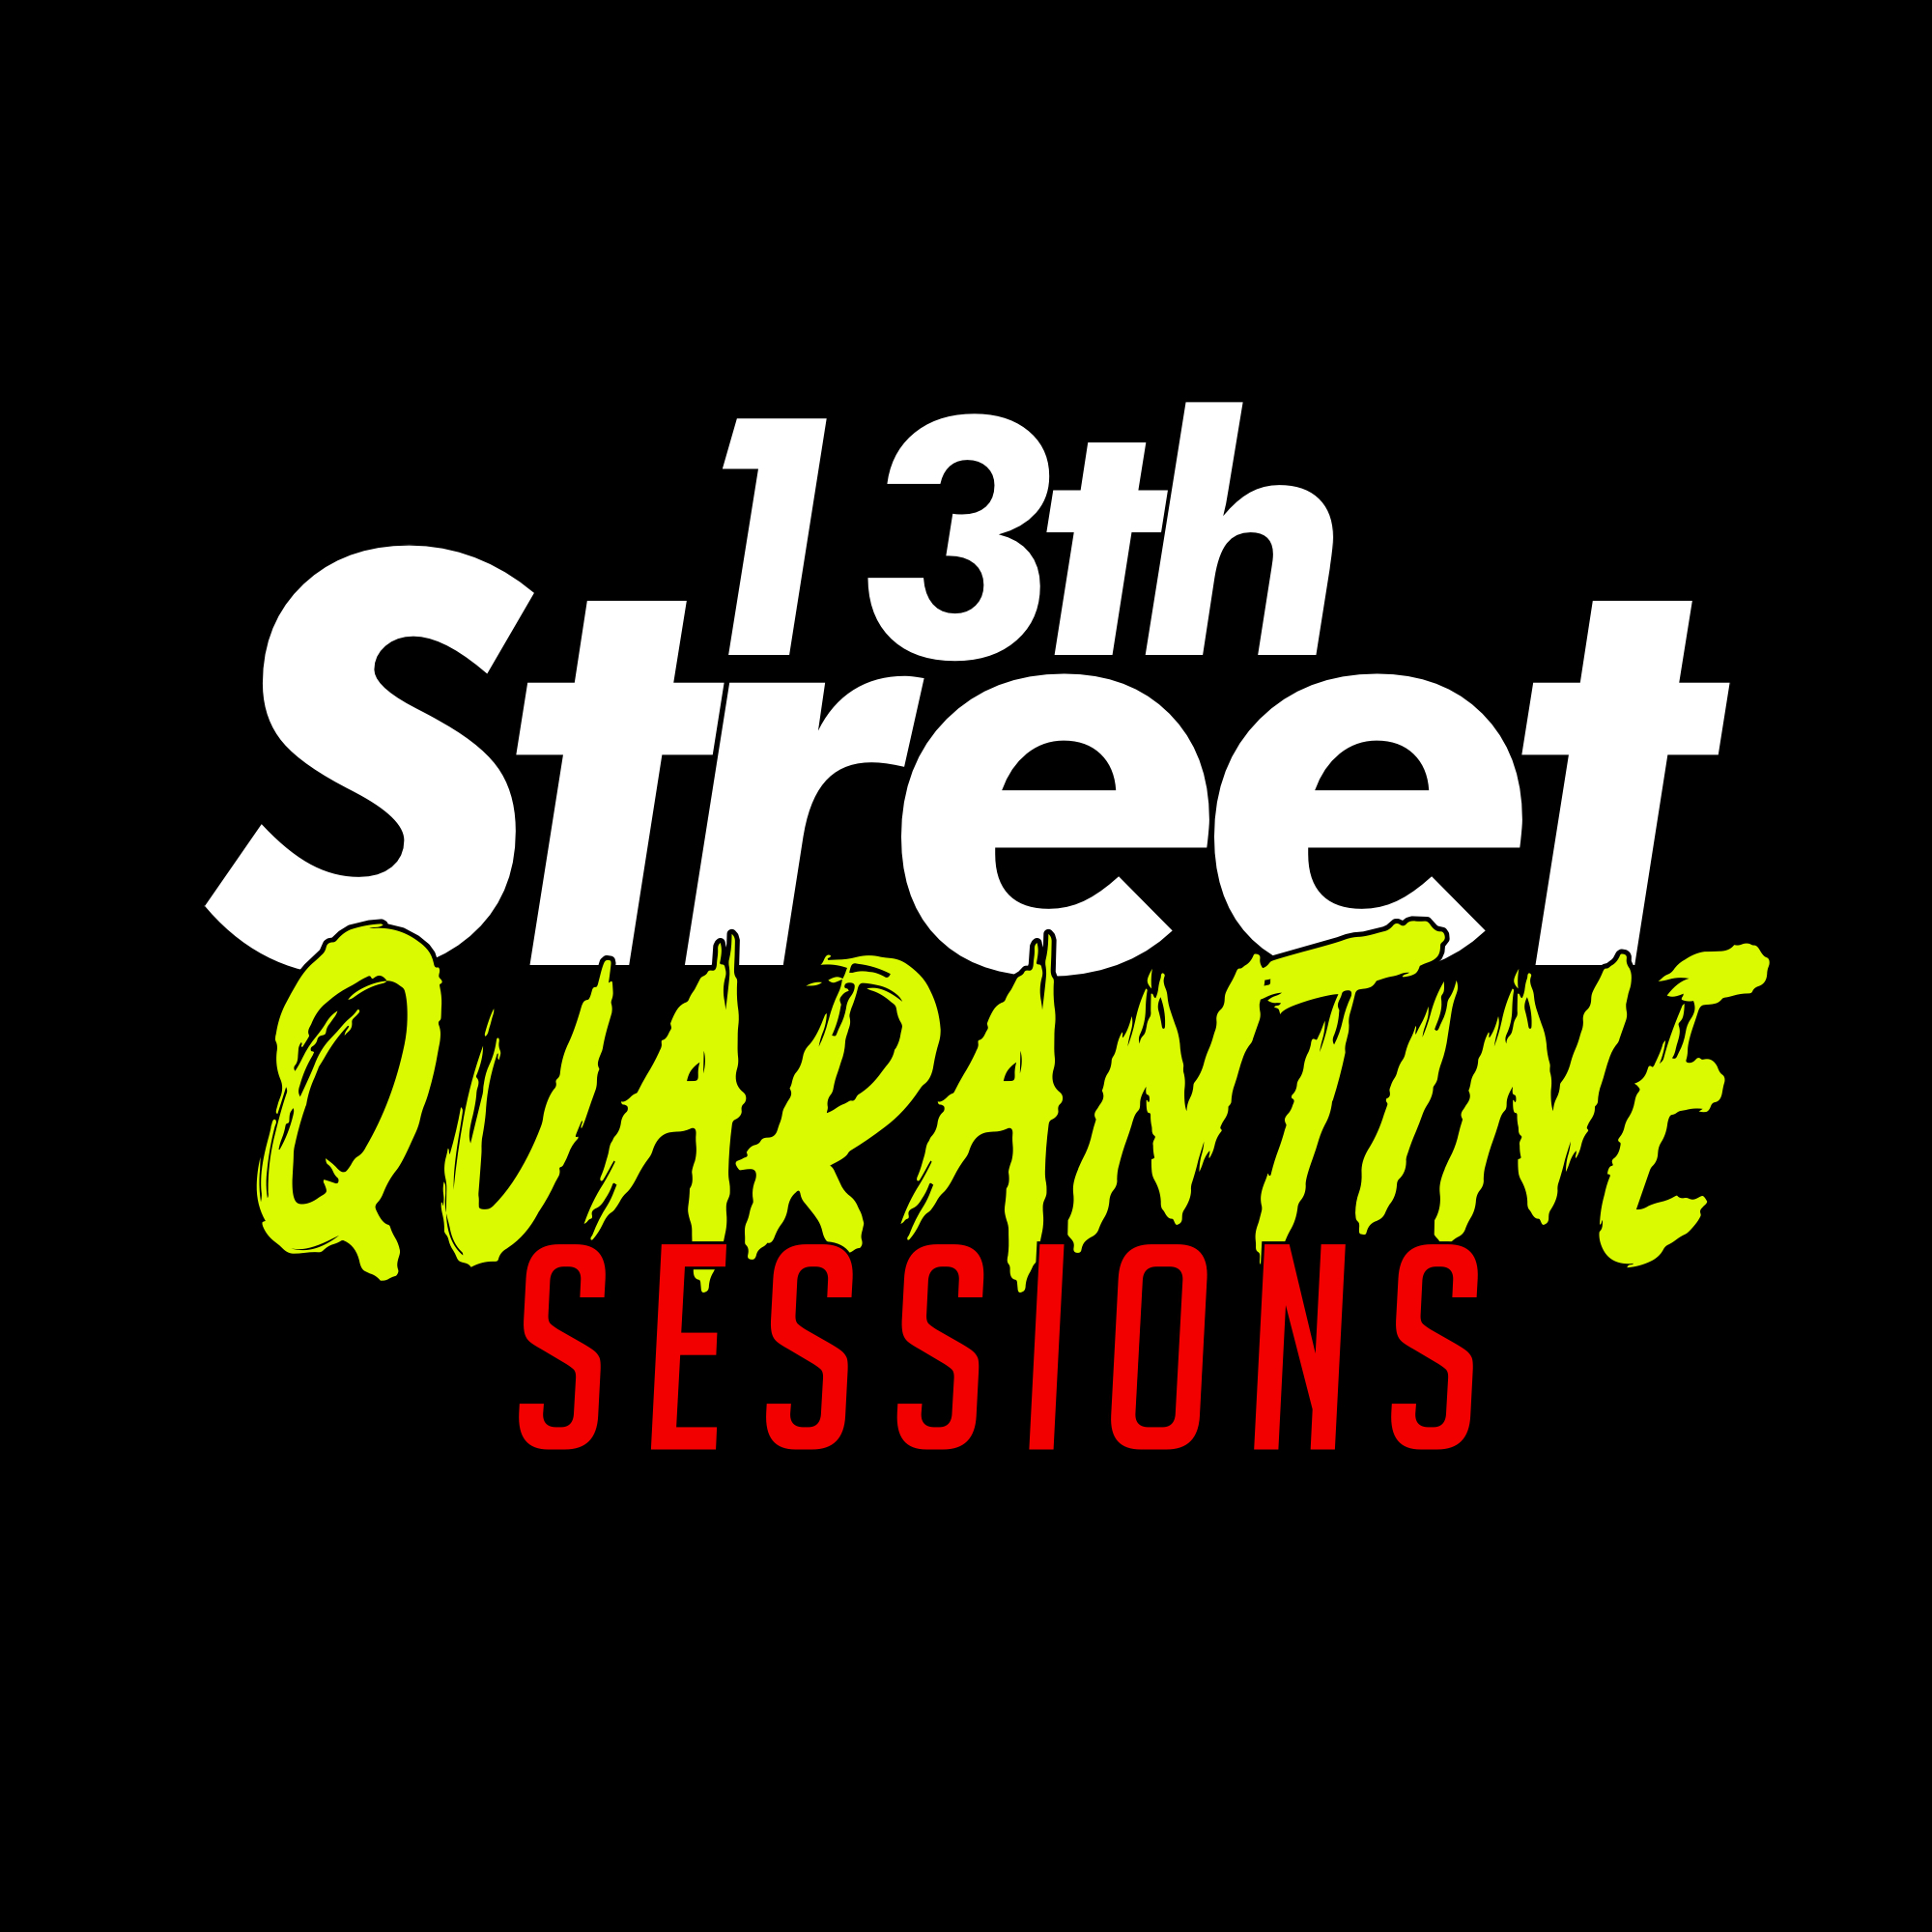 Jamaica 13th Street Quarantine Sessions Reggae Dancehall Music Blog 13thStreetPromo 13thStreetPromotions Listening Session Youtube Caribbean Boston Rhiya Luna Fvrfvn Trinidad Trinidad and Tobago Hip Hop Singer